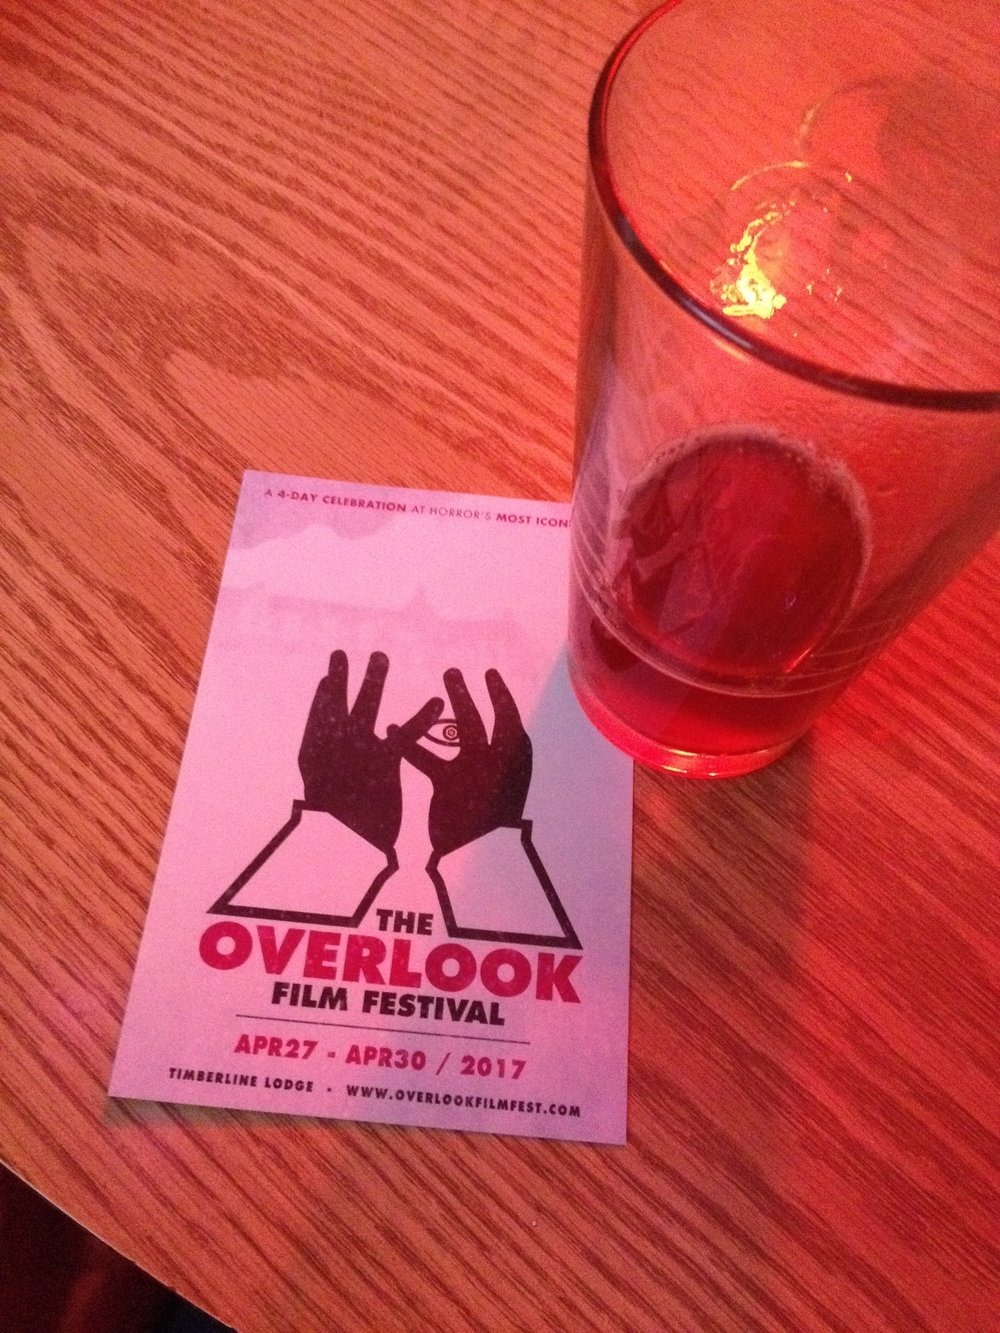 Found a card for the festival at a NE Portland neighborhood bar a couple of weeks ago. Happy to help promote!